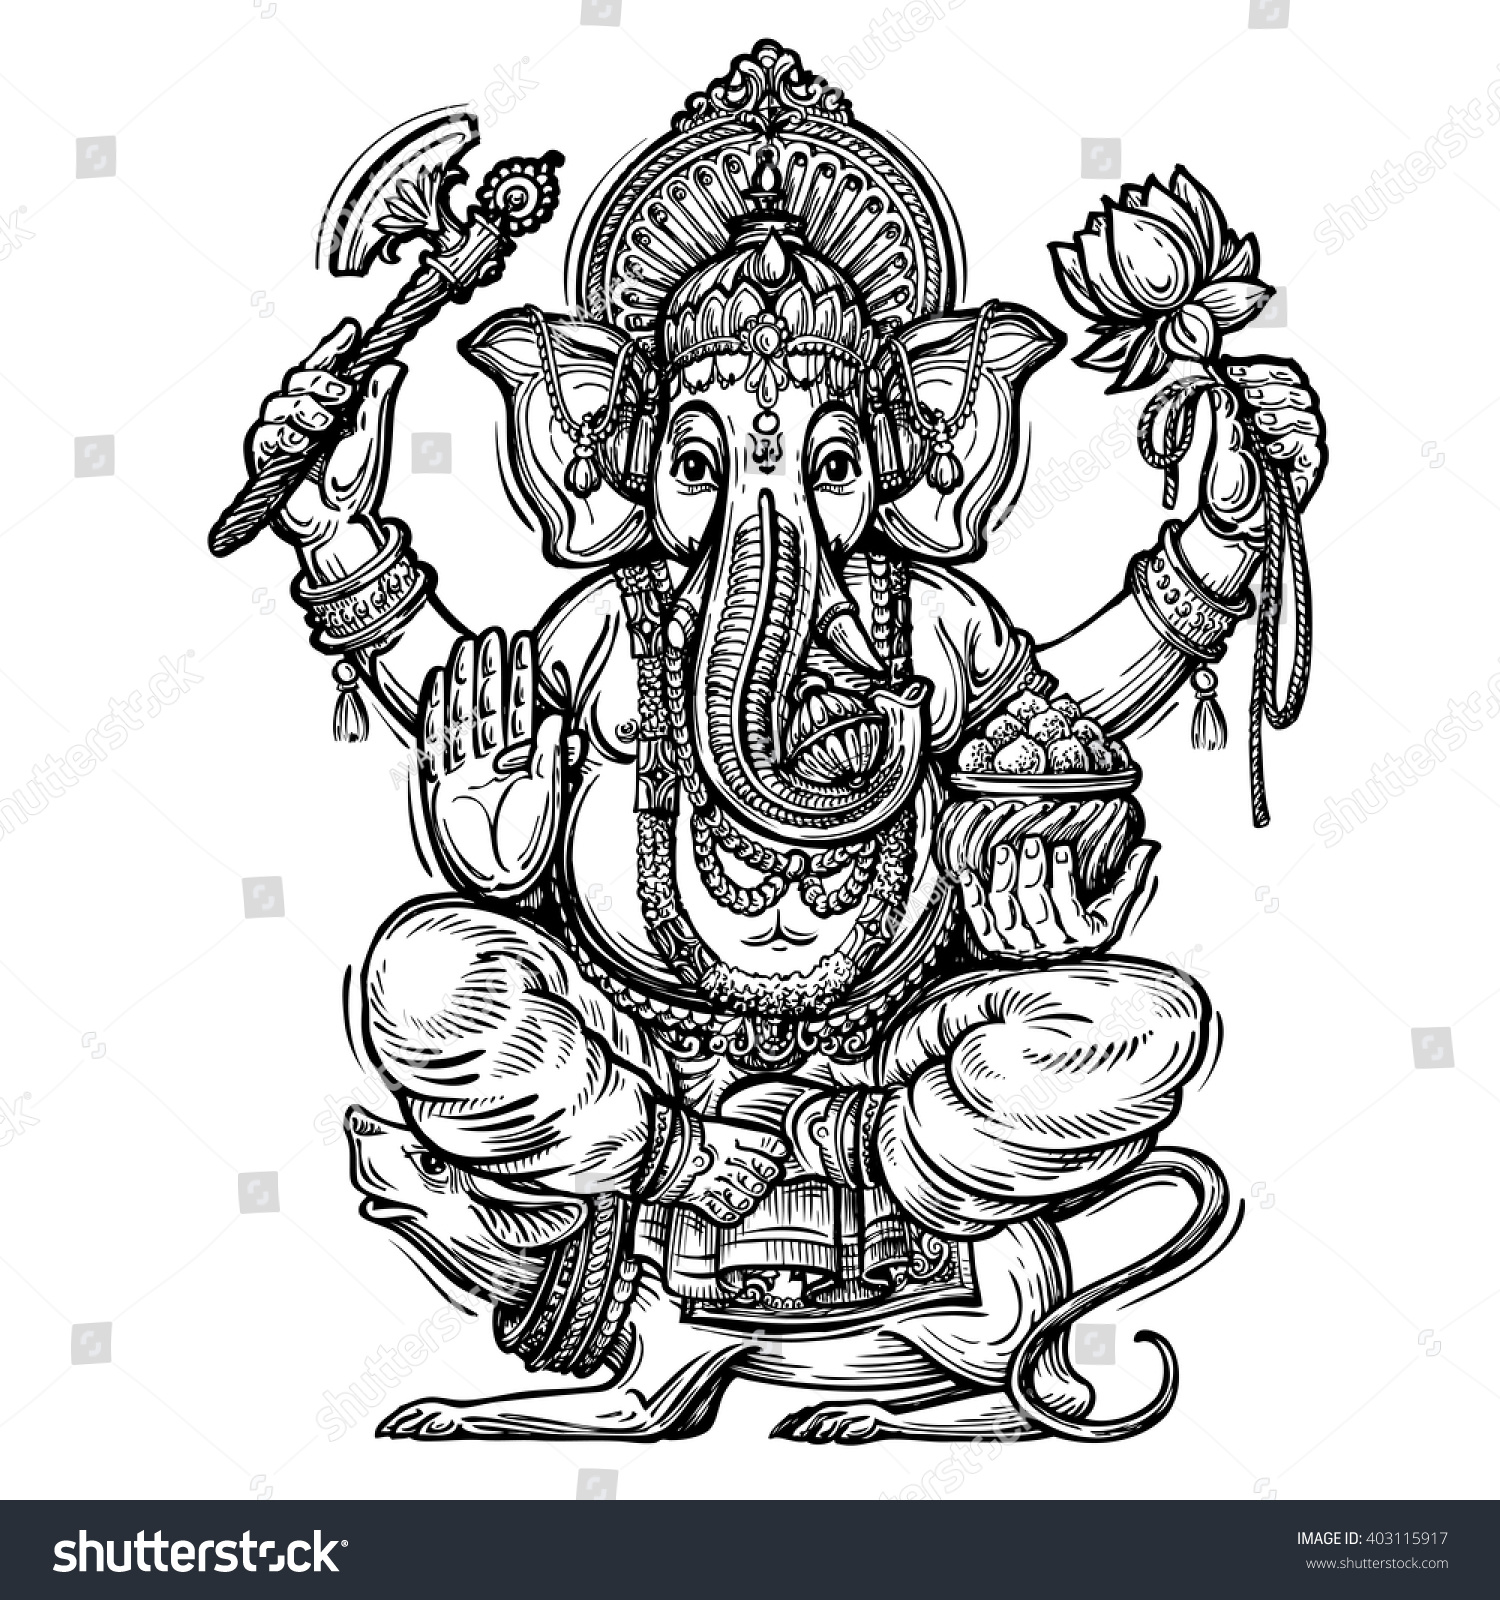 Hand drawn sketch vector illustration ganesh chaturthi